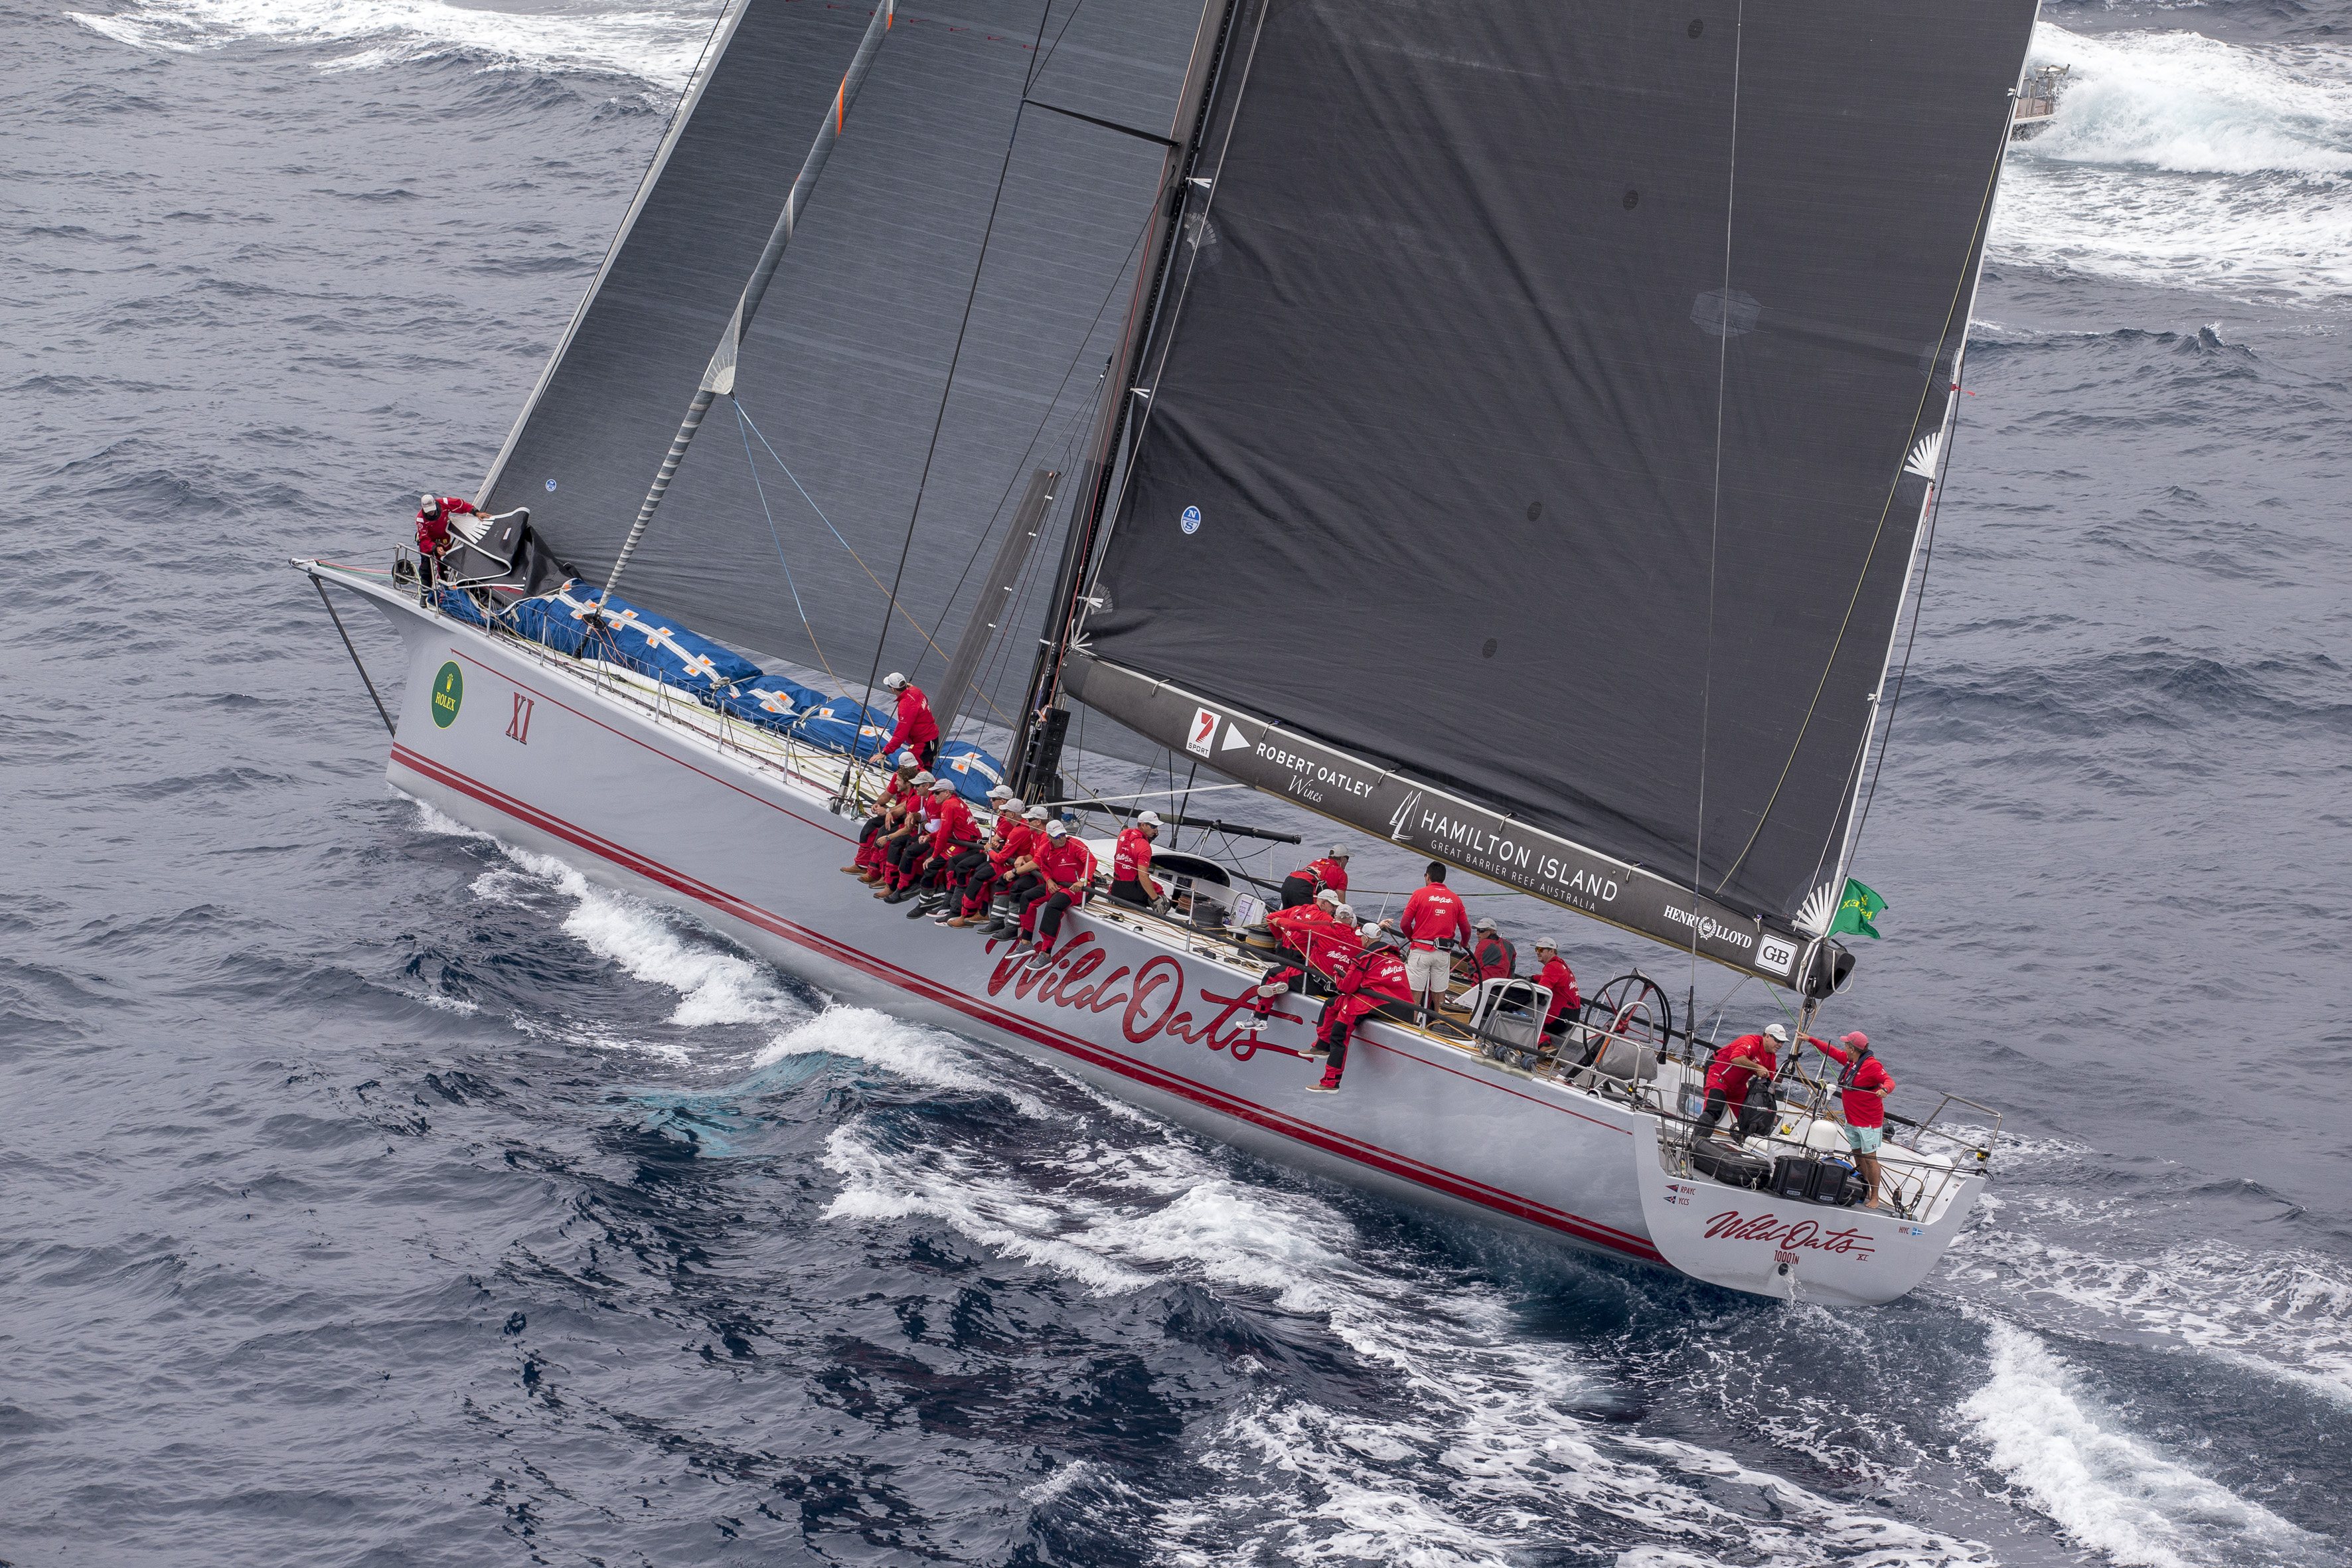 A GRANDSTAND FINISH LOOMS IN THE ROLEX SYDNEY TO HOBART YACHT RACE